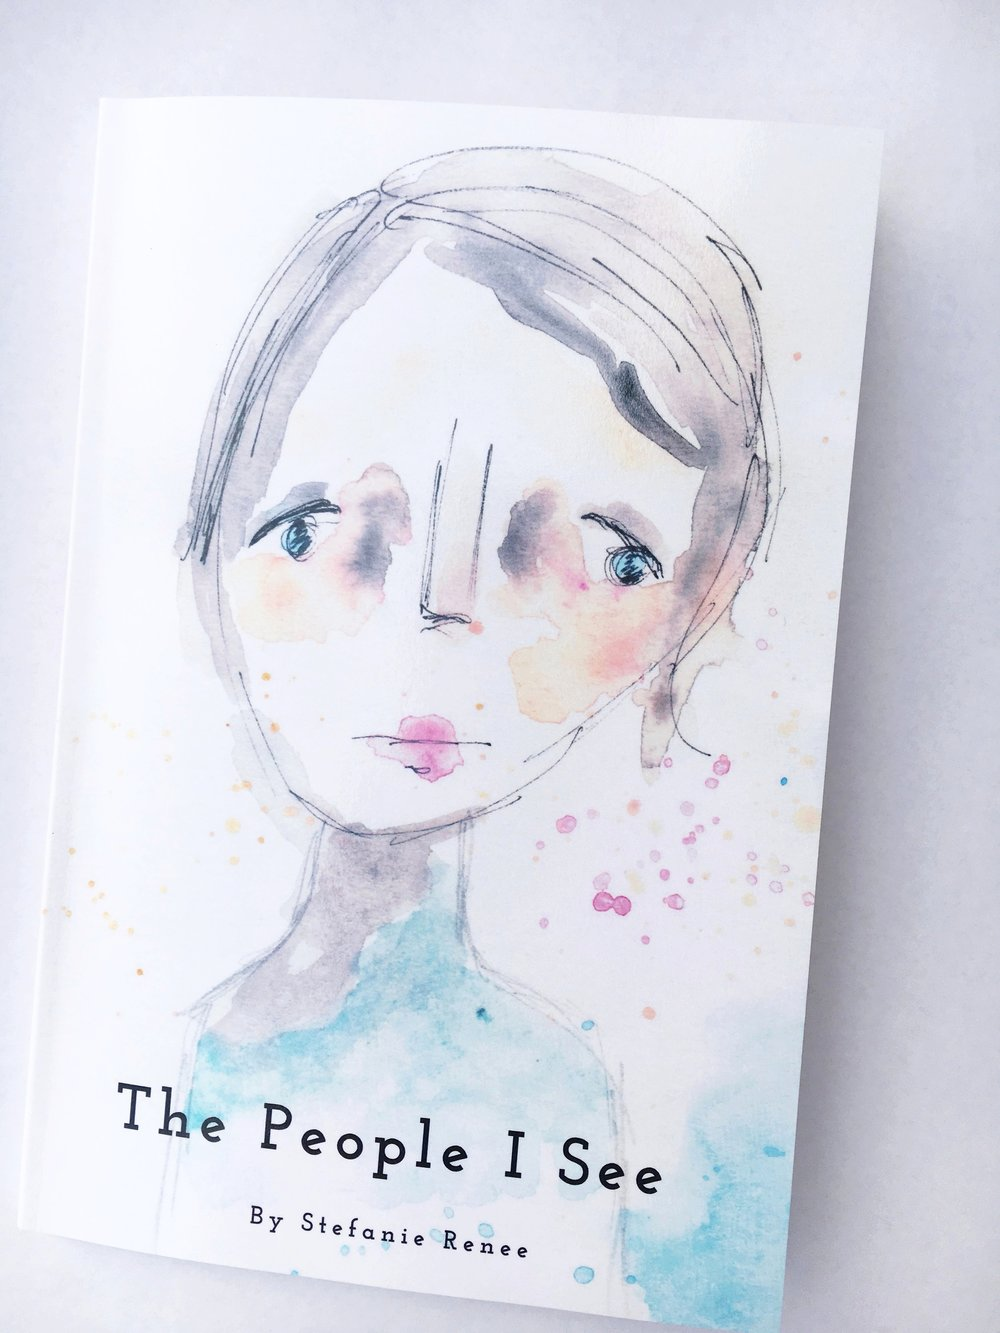 The People I See - A collection of Stef Scribbles from 2014 - 2017The people within these pages are a select few from my daily creative practice project #stefscribbles that started in 2014 on Instagram. I would sketch, add watercolors and eventually name and create stories around them. They are inspired by the people and experiences I witness throughout my days and my imagination.• Pre-order: $20.00 + shipping• 6x9 softcover, 44 pages*If you're outside of the US and would like to order please email me at stefanie@stefanierenee.net and we'll work out the shipping.